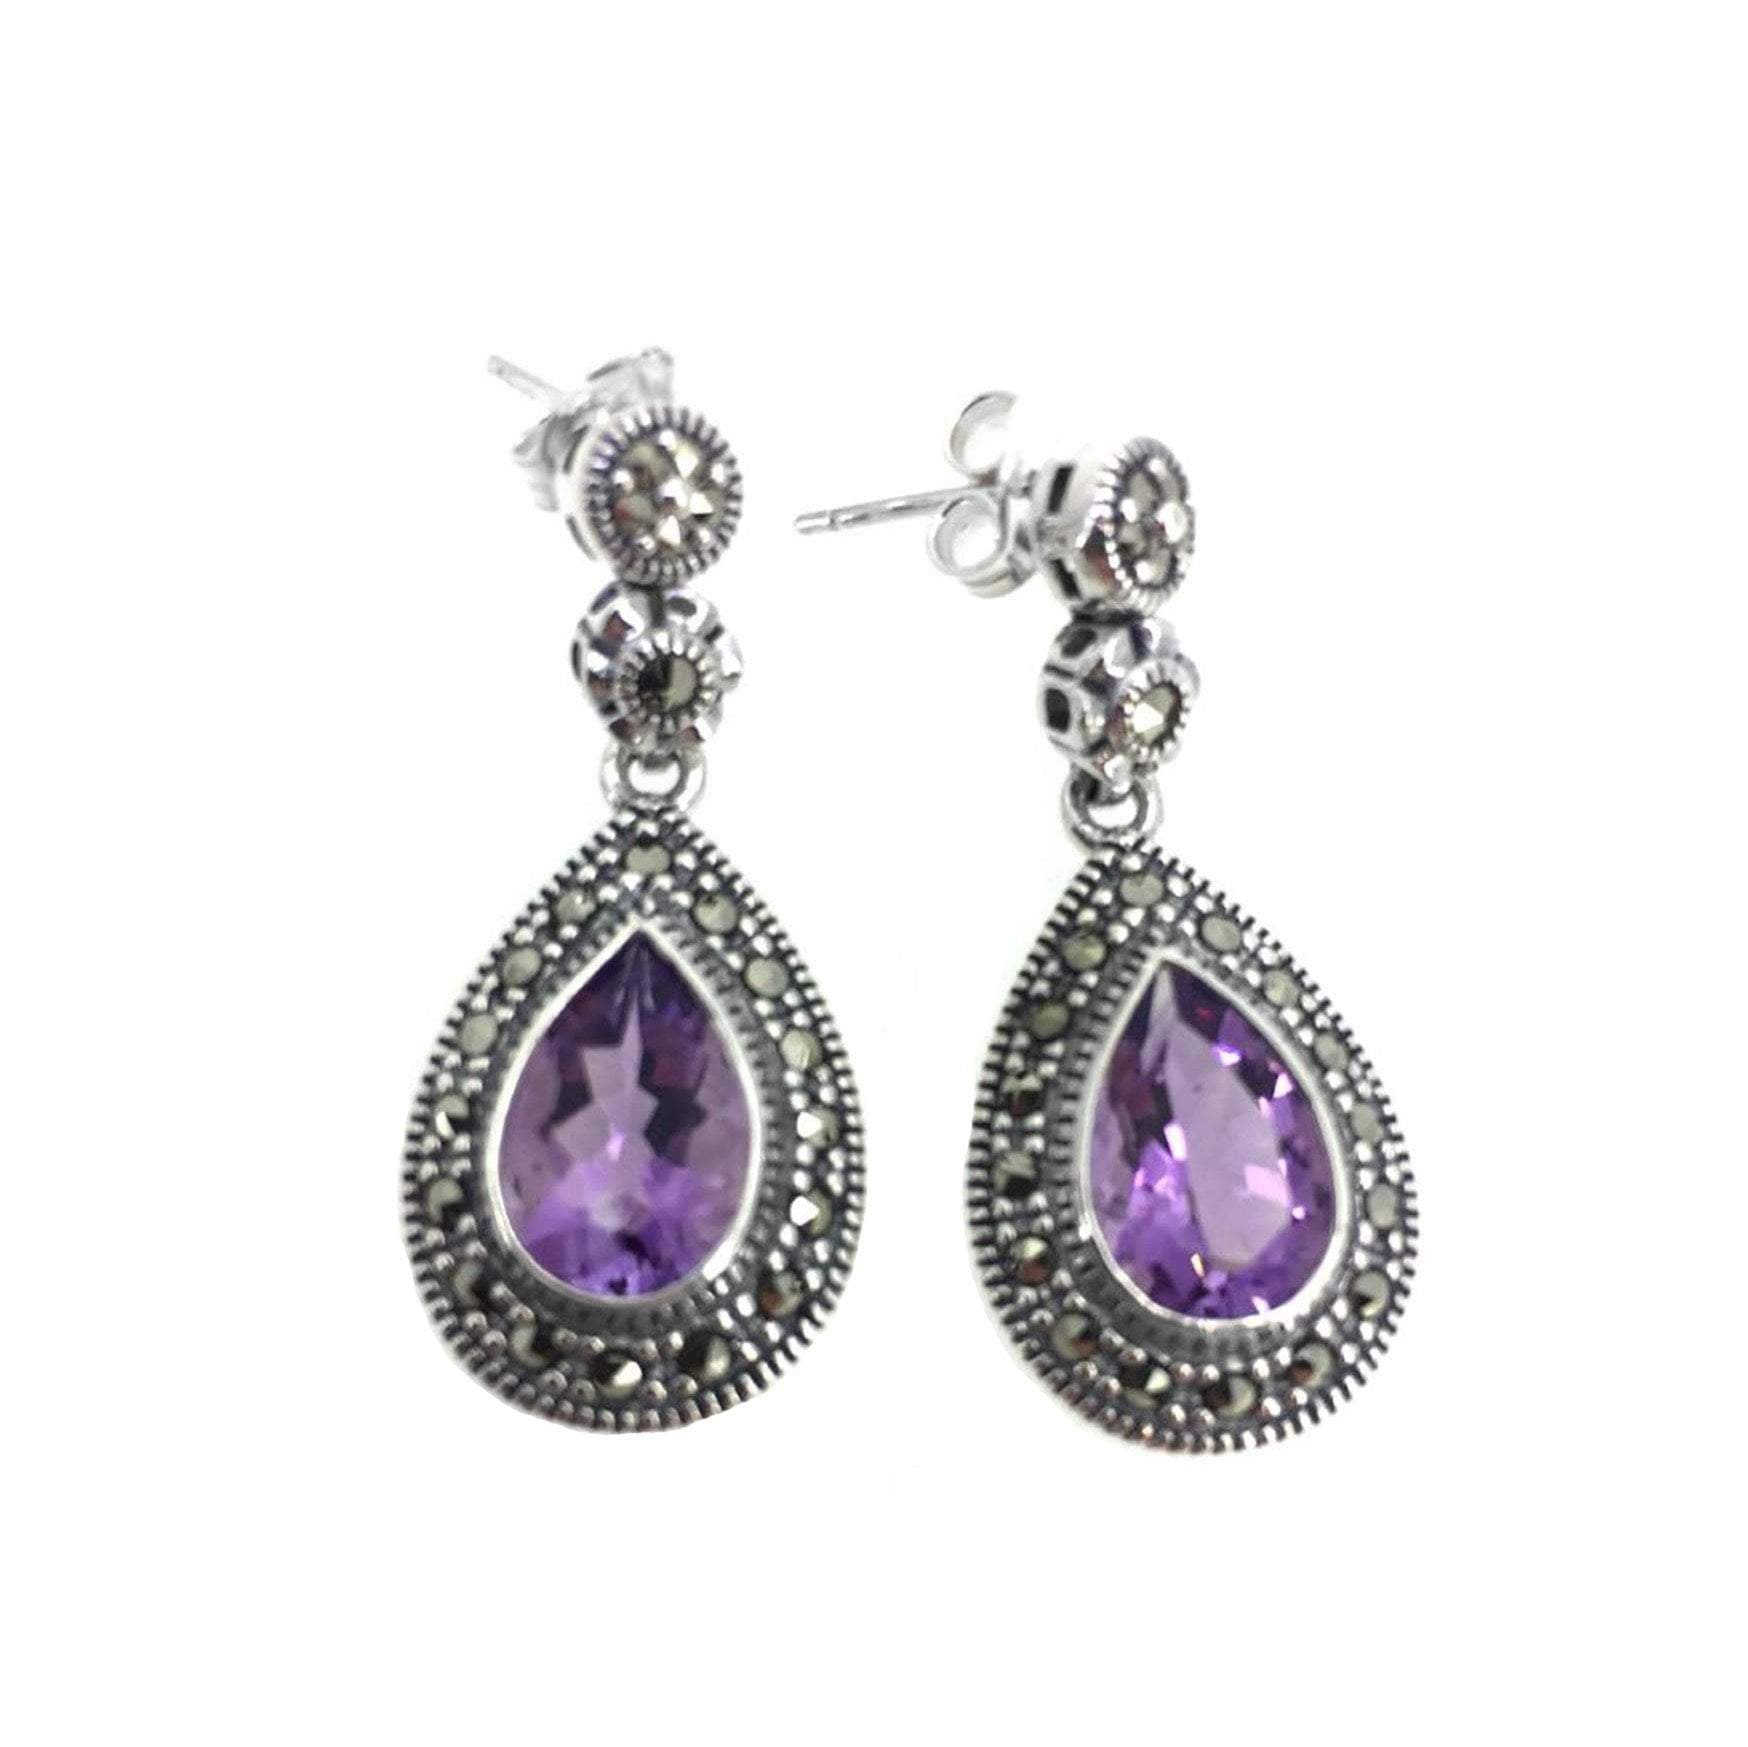 Marcasite & Amethyst Teardrop Earrings